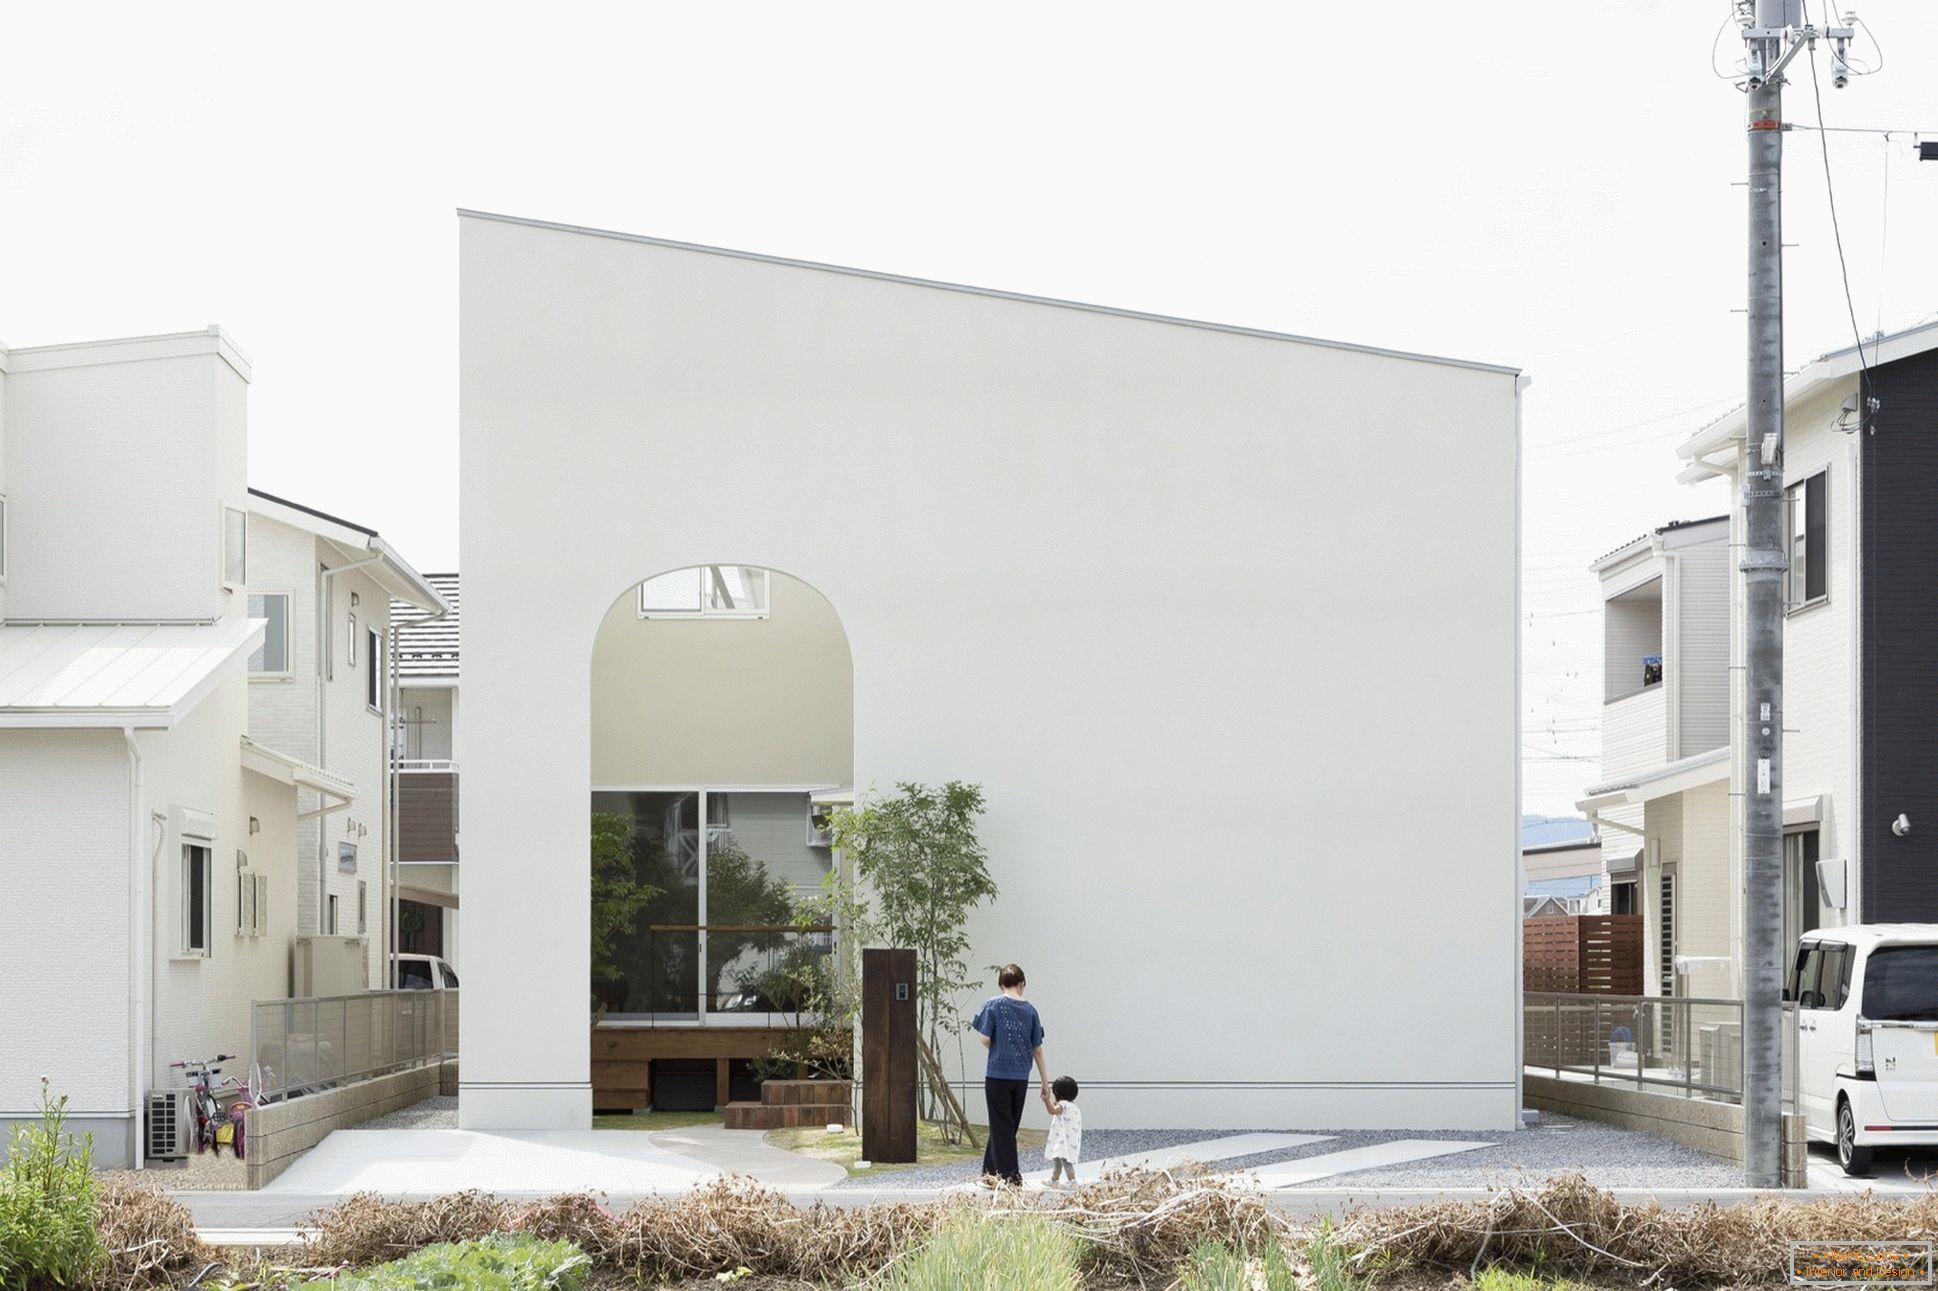 Small house with arches in Japan